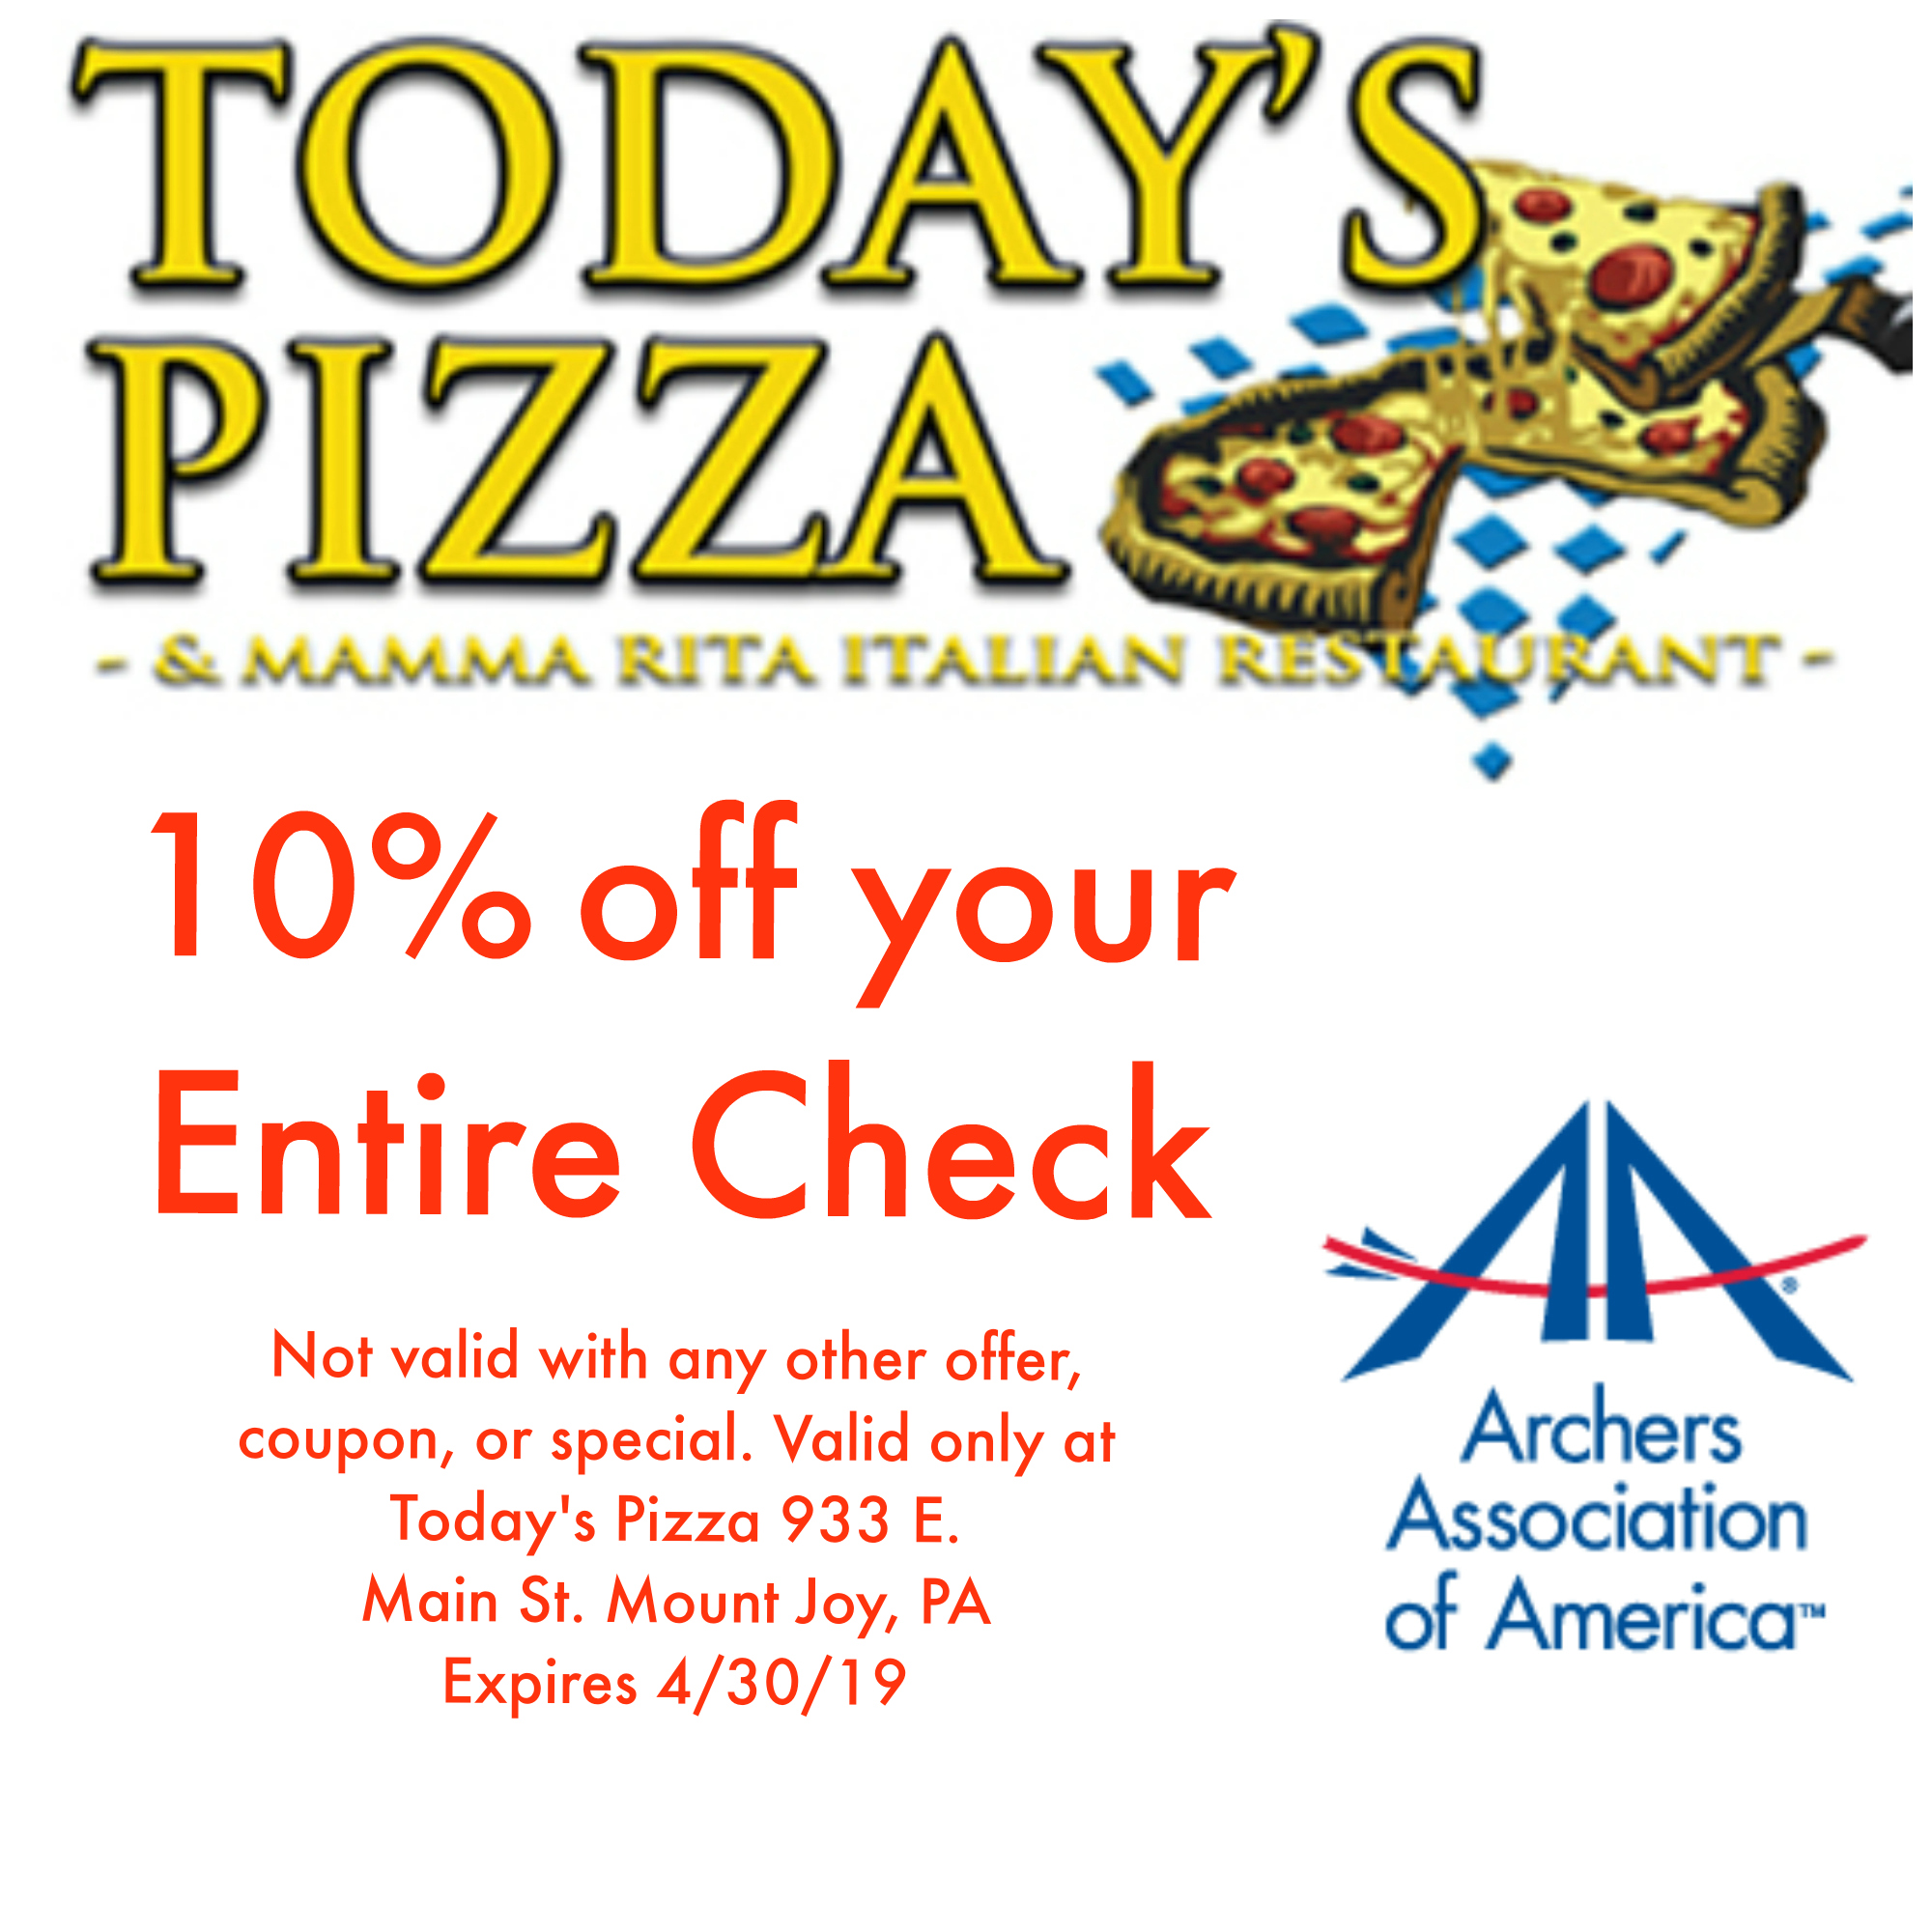 Today's Pizza & Mamma Rita Italian Restaurant - 10% off your Entire CheckShow this coupon